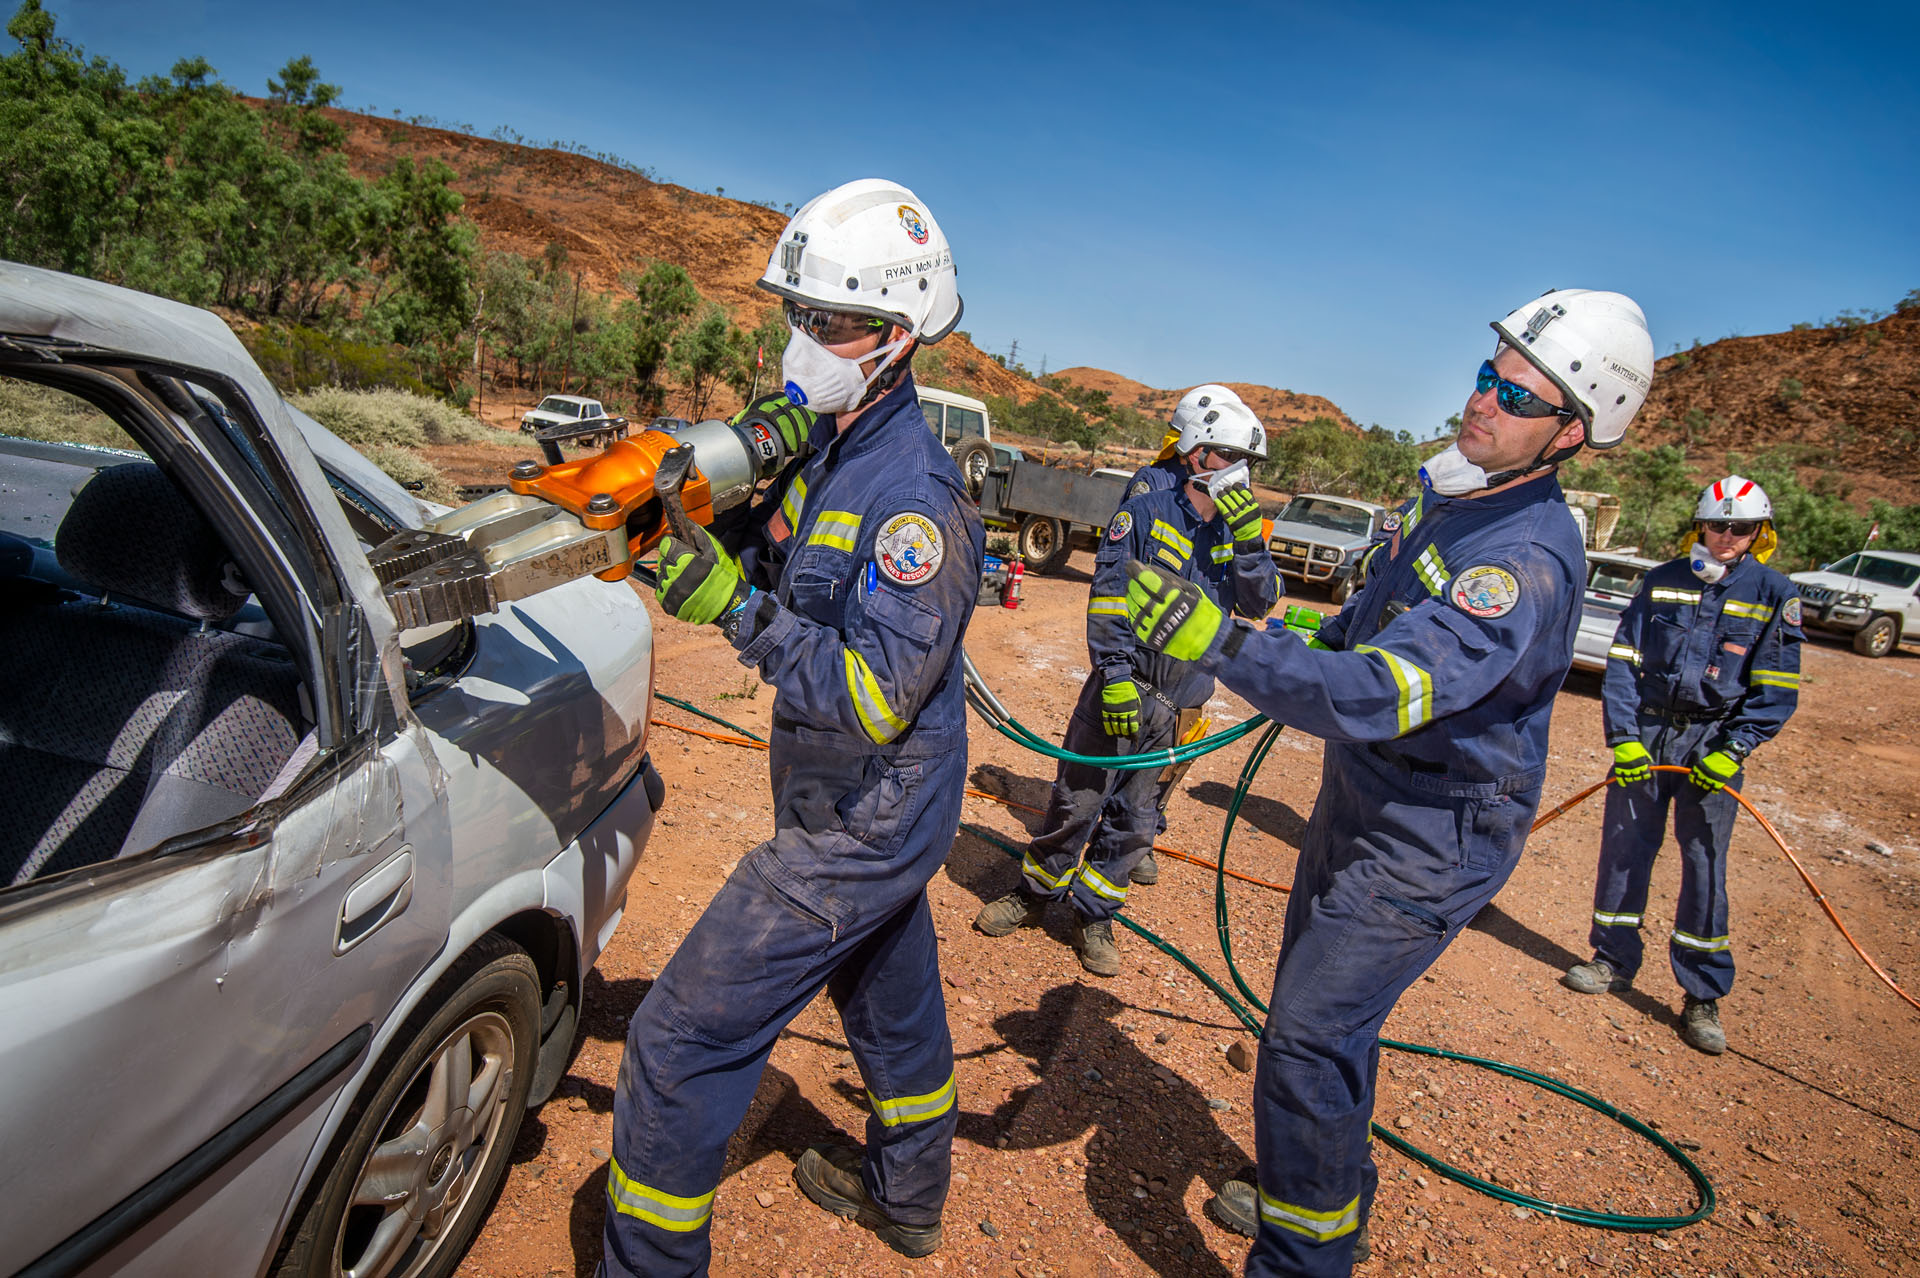 Photography of product, premises and personnel at Glencore's Mount Isa Mines, Mount Isa